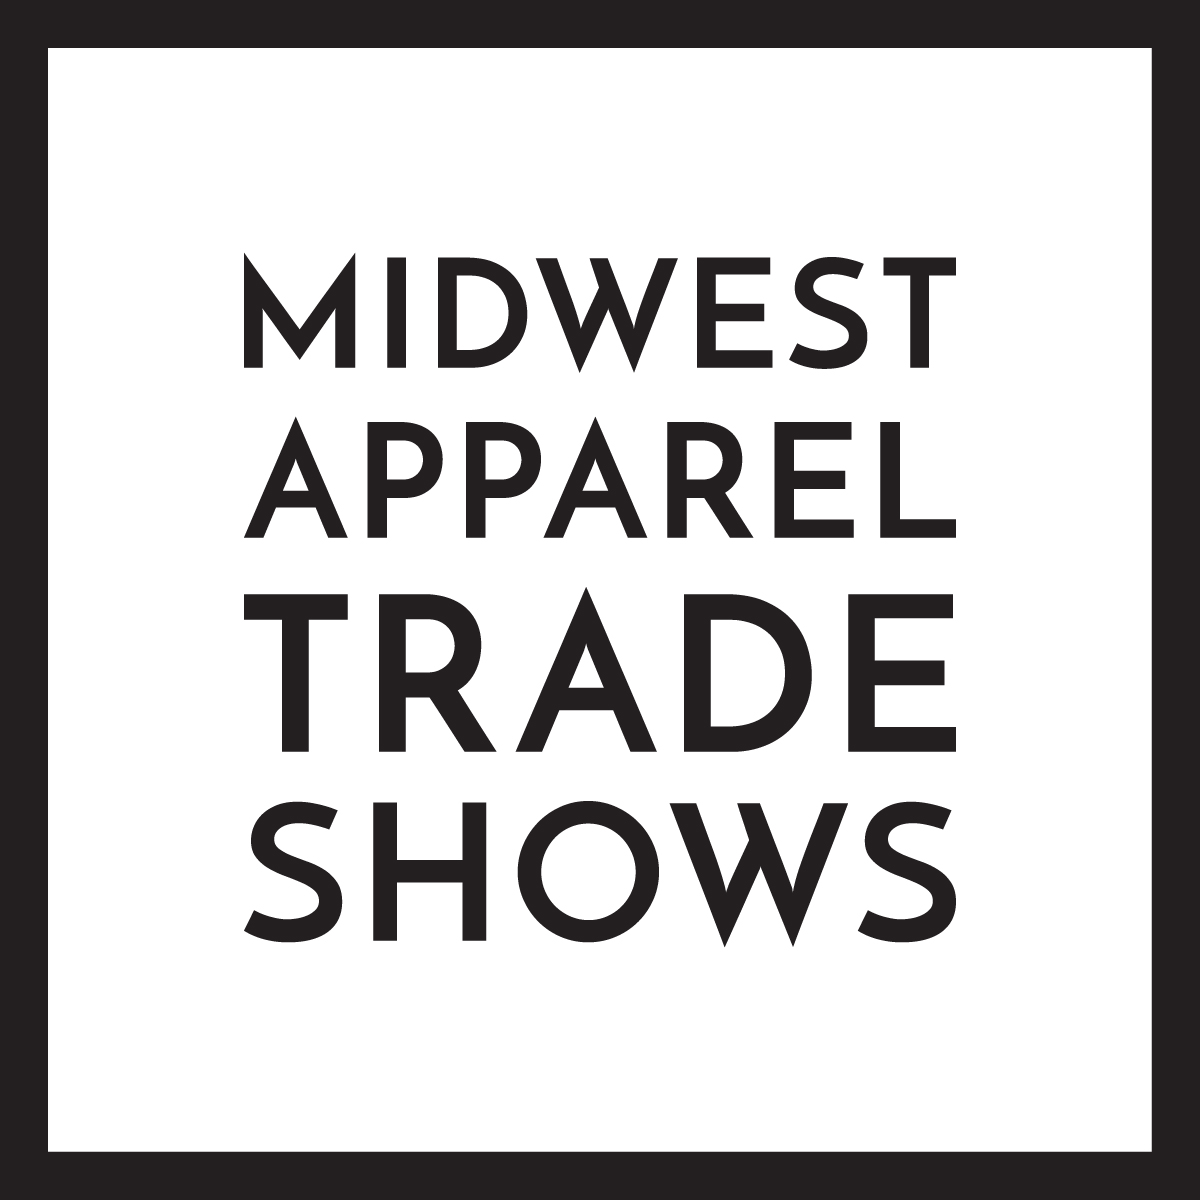 Midwest Apparel Trade Shows